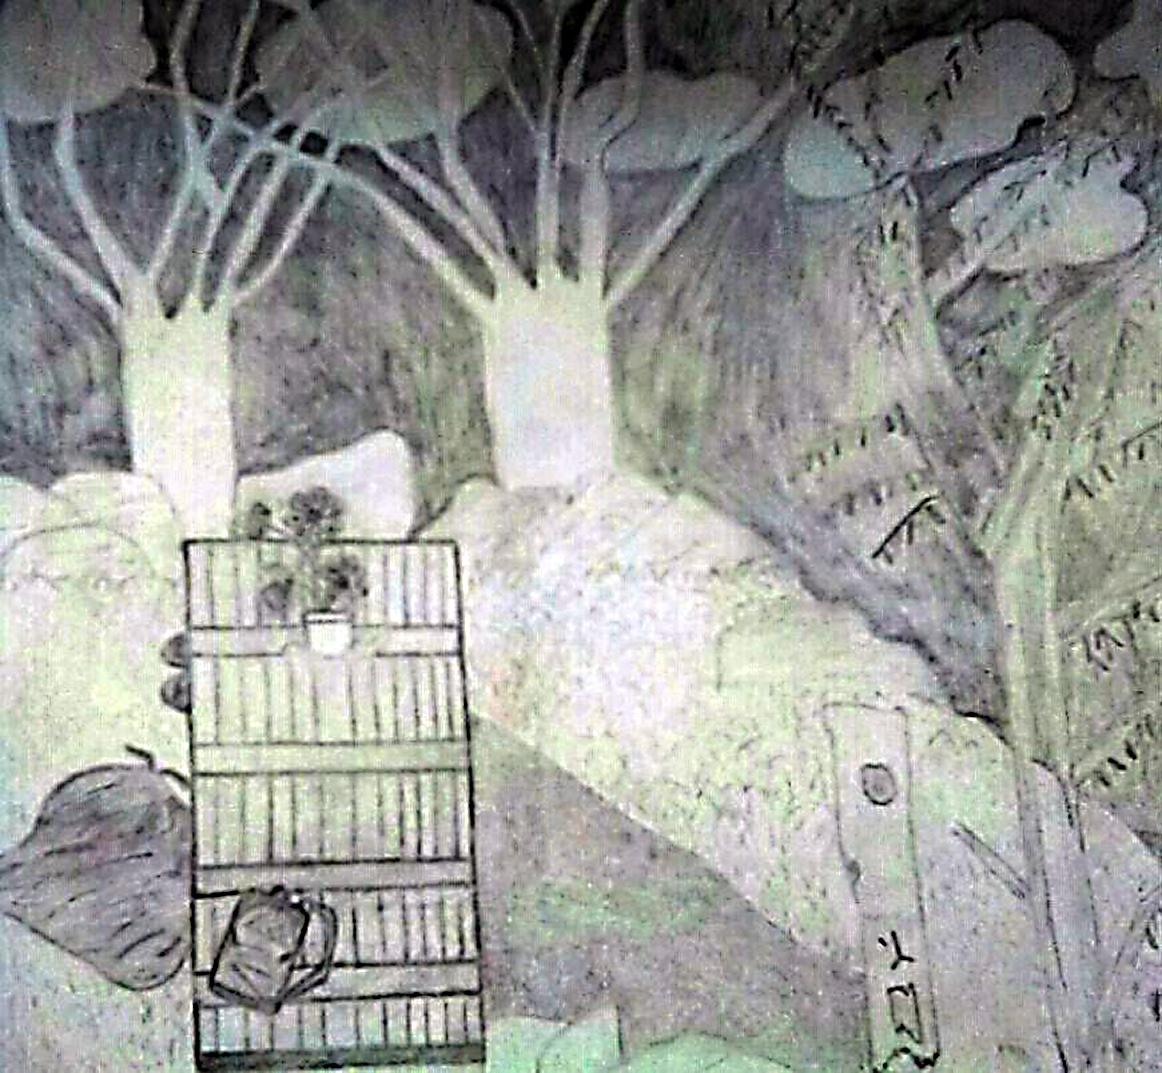 This illustration, by Lori Yearwood, is of the park bench where she spent many nights during her homelessness. (Lori Teresa Yearwood)